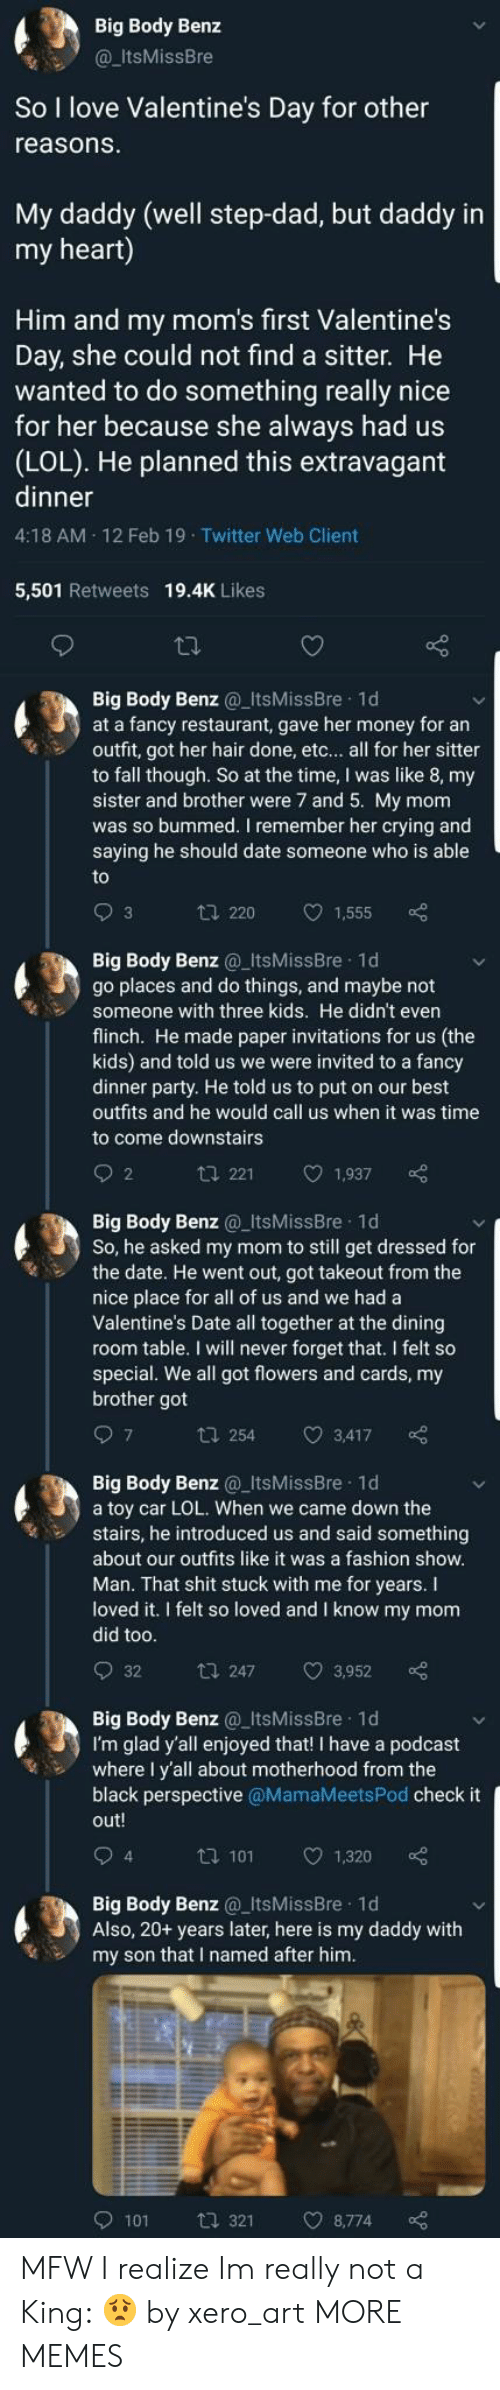 Crying, Dad, and Dank: Big Body Benz  @ItsMissBre  So I love Valentine's Day for other  reasons  My daddy (well step-dad, but daddy in  my heart)  Him and my mom's first Valentine's  Day, she could not find a sitter. He  wanted to do something really nice  for her because she always had us  (LOL). He planned this extravagant  dinner  4:18 AM 12 Feb 19 Twitter Web Client  5,501 Retweets 19.4K Likes  Big Body Benz ItsMissBre 1d  at a fancy restaurant, gave her money for an  outfit, got her hair done, etc... all for her sitter  to fall though. So at the time, I was like 8, my  sister and brother were 7 and 5. My mom  was so bummed. I remember her crying and  saying he should date someone who is able  t 220 1,555  Big Body Benz ItsMissBre 1d  go places and do things, and maybe not  Someone with three kids. He didn't even  flinch. He made paper invitations for us (the  kids) and told us we were invited to a fancy  dinner party. He told us to put on our best  outfits and he would call us when it was time  to come downstairs  2  t 221 1,937  Big Body Benz ItsMissBre 1d  So, he asked my mom to still get dressed for  the date. He went out, got takeout from the  nice place for all of us and we had a  Valentine's Date all together at the dining  room table. I will never forget that. I felt so  special. We all got flowers and cards, my  brother got  t 254 3,417  Big Body Benz@_ItsMissBre 1d  a toy car LOL. When we came down the  stairs, he introduced us and said something  about our outfits like it was a fashion show  Man. That shit stuck with me for years. I  loved it. I felt so loved and I know my mom  did too  t 247 3,952  Big Body Benz_ItsMissBre 1d  I'm glad y'all enjoyed that! I have a podcast  where I y'all about motherhood from the  black perspective @MamaMeetsPod check it  out!  4  ta 101 1  1,320  Big Body Benz_ItsMissBre 1d  Also, 20+ years later, here is my daddy with  my son that I named after hinm  9101  321  8,774 MFW I realize Im really not a King: 😟 by xero_art MORE MEMES